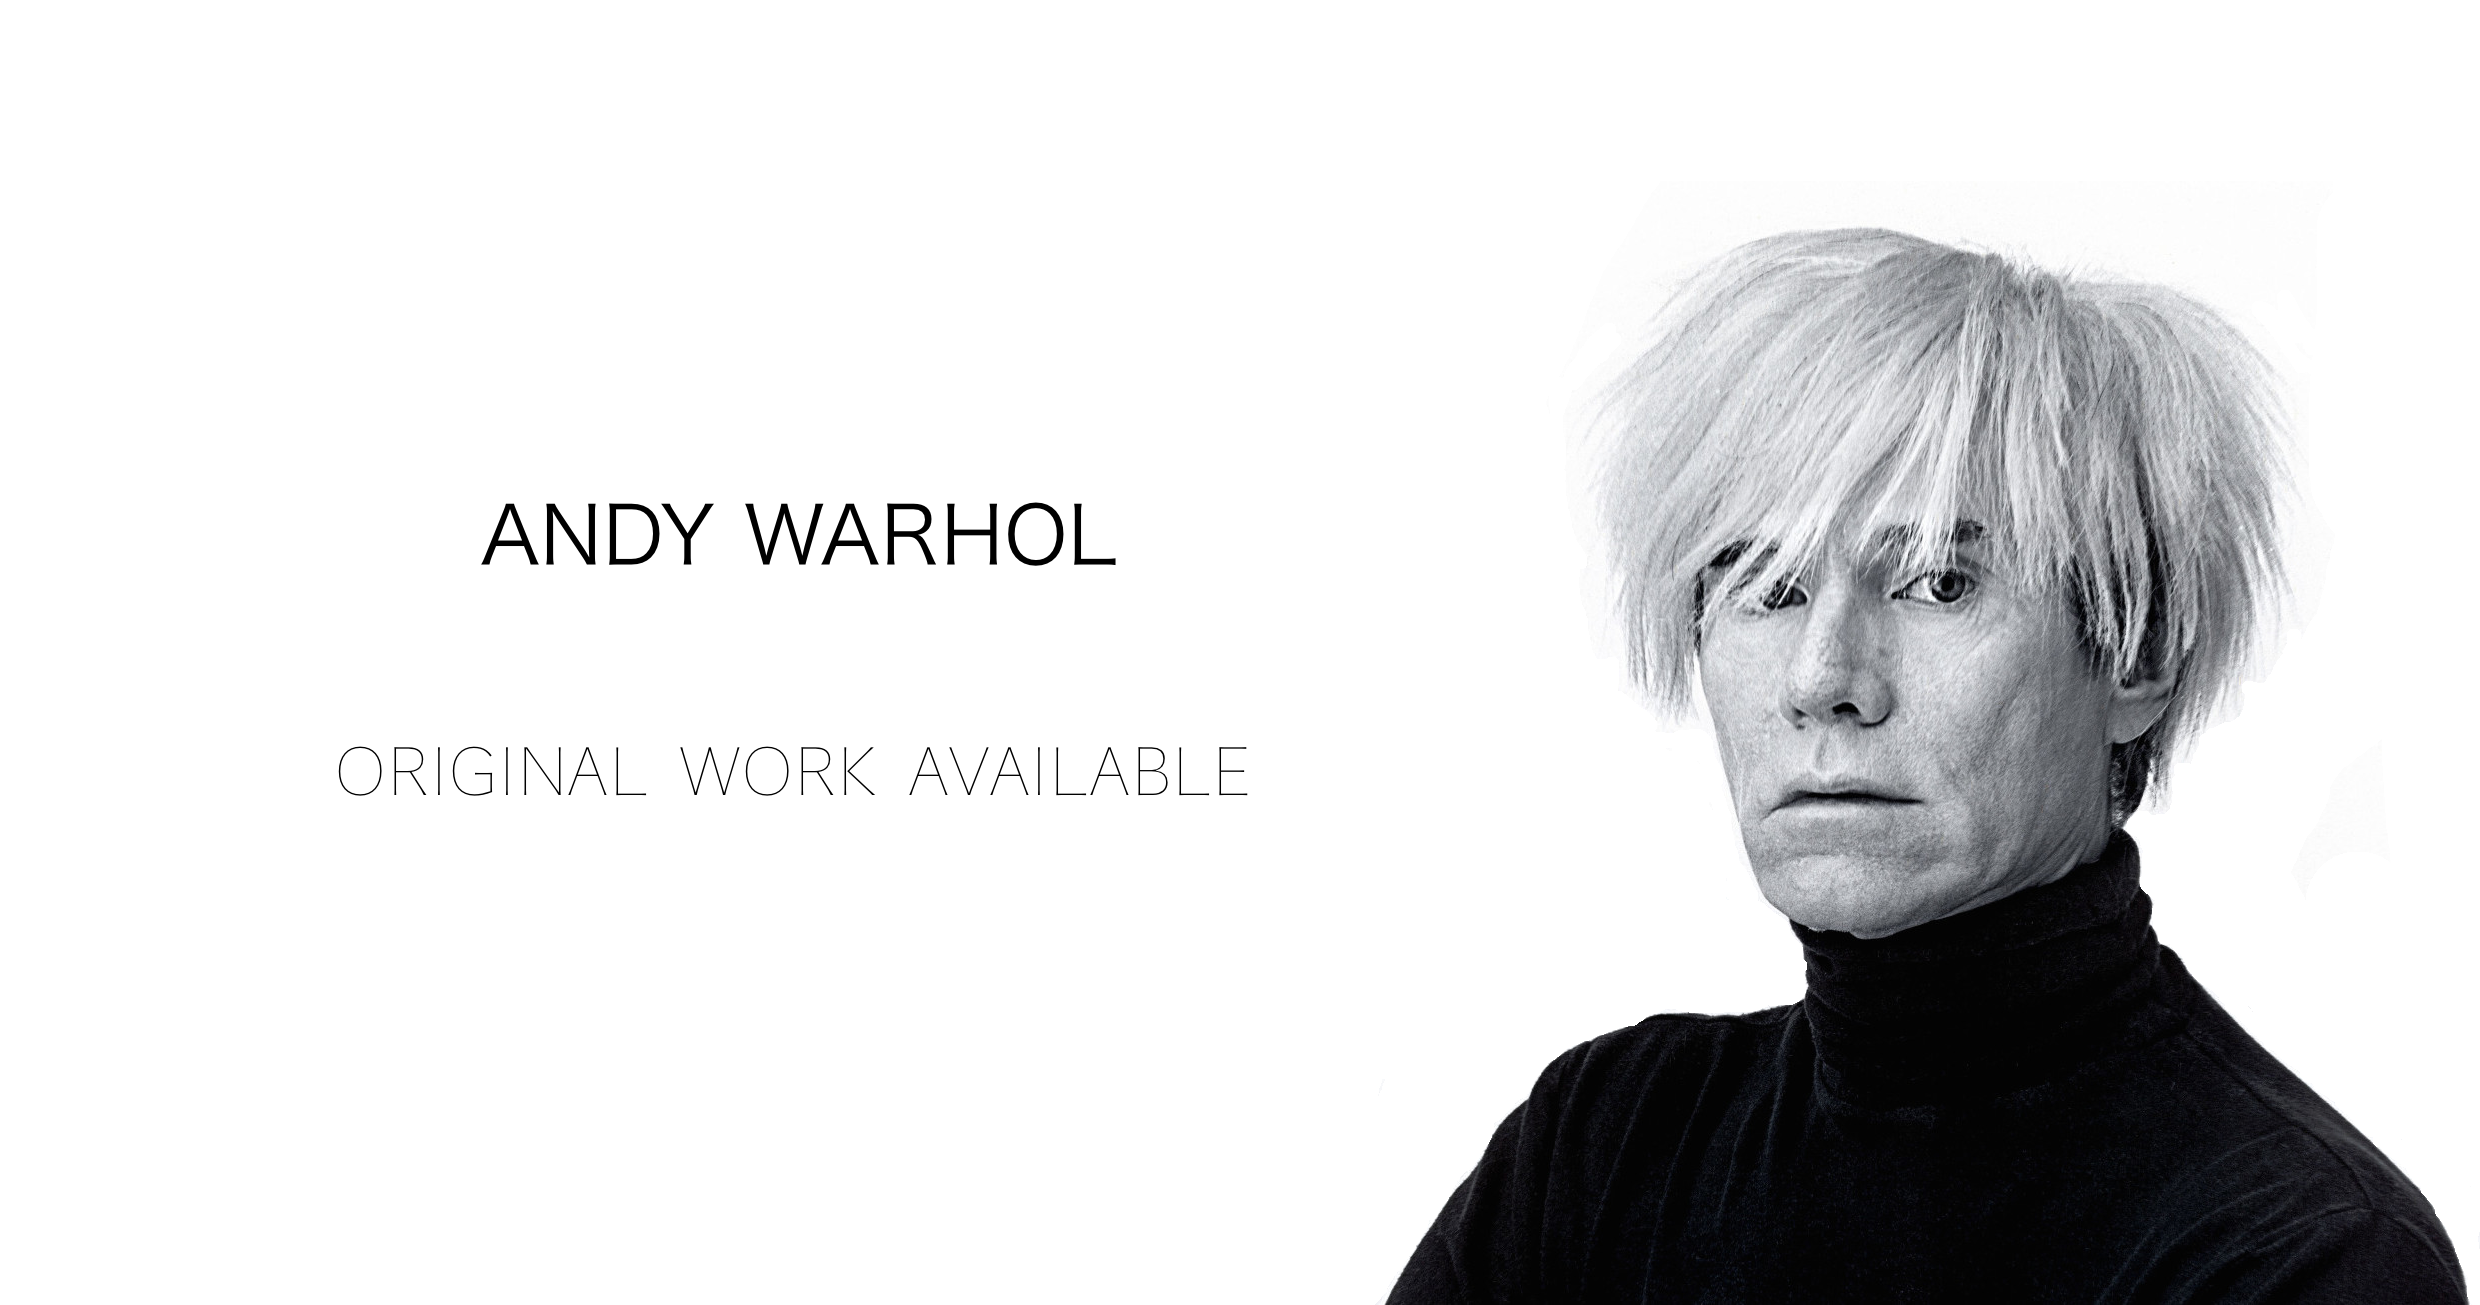 555 Andy Warhol Home Page.png